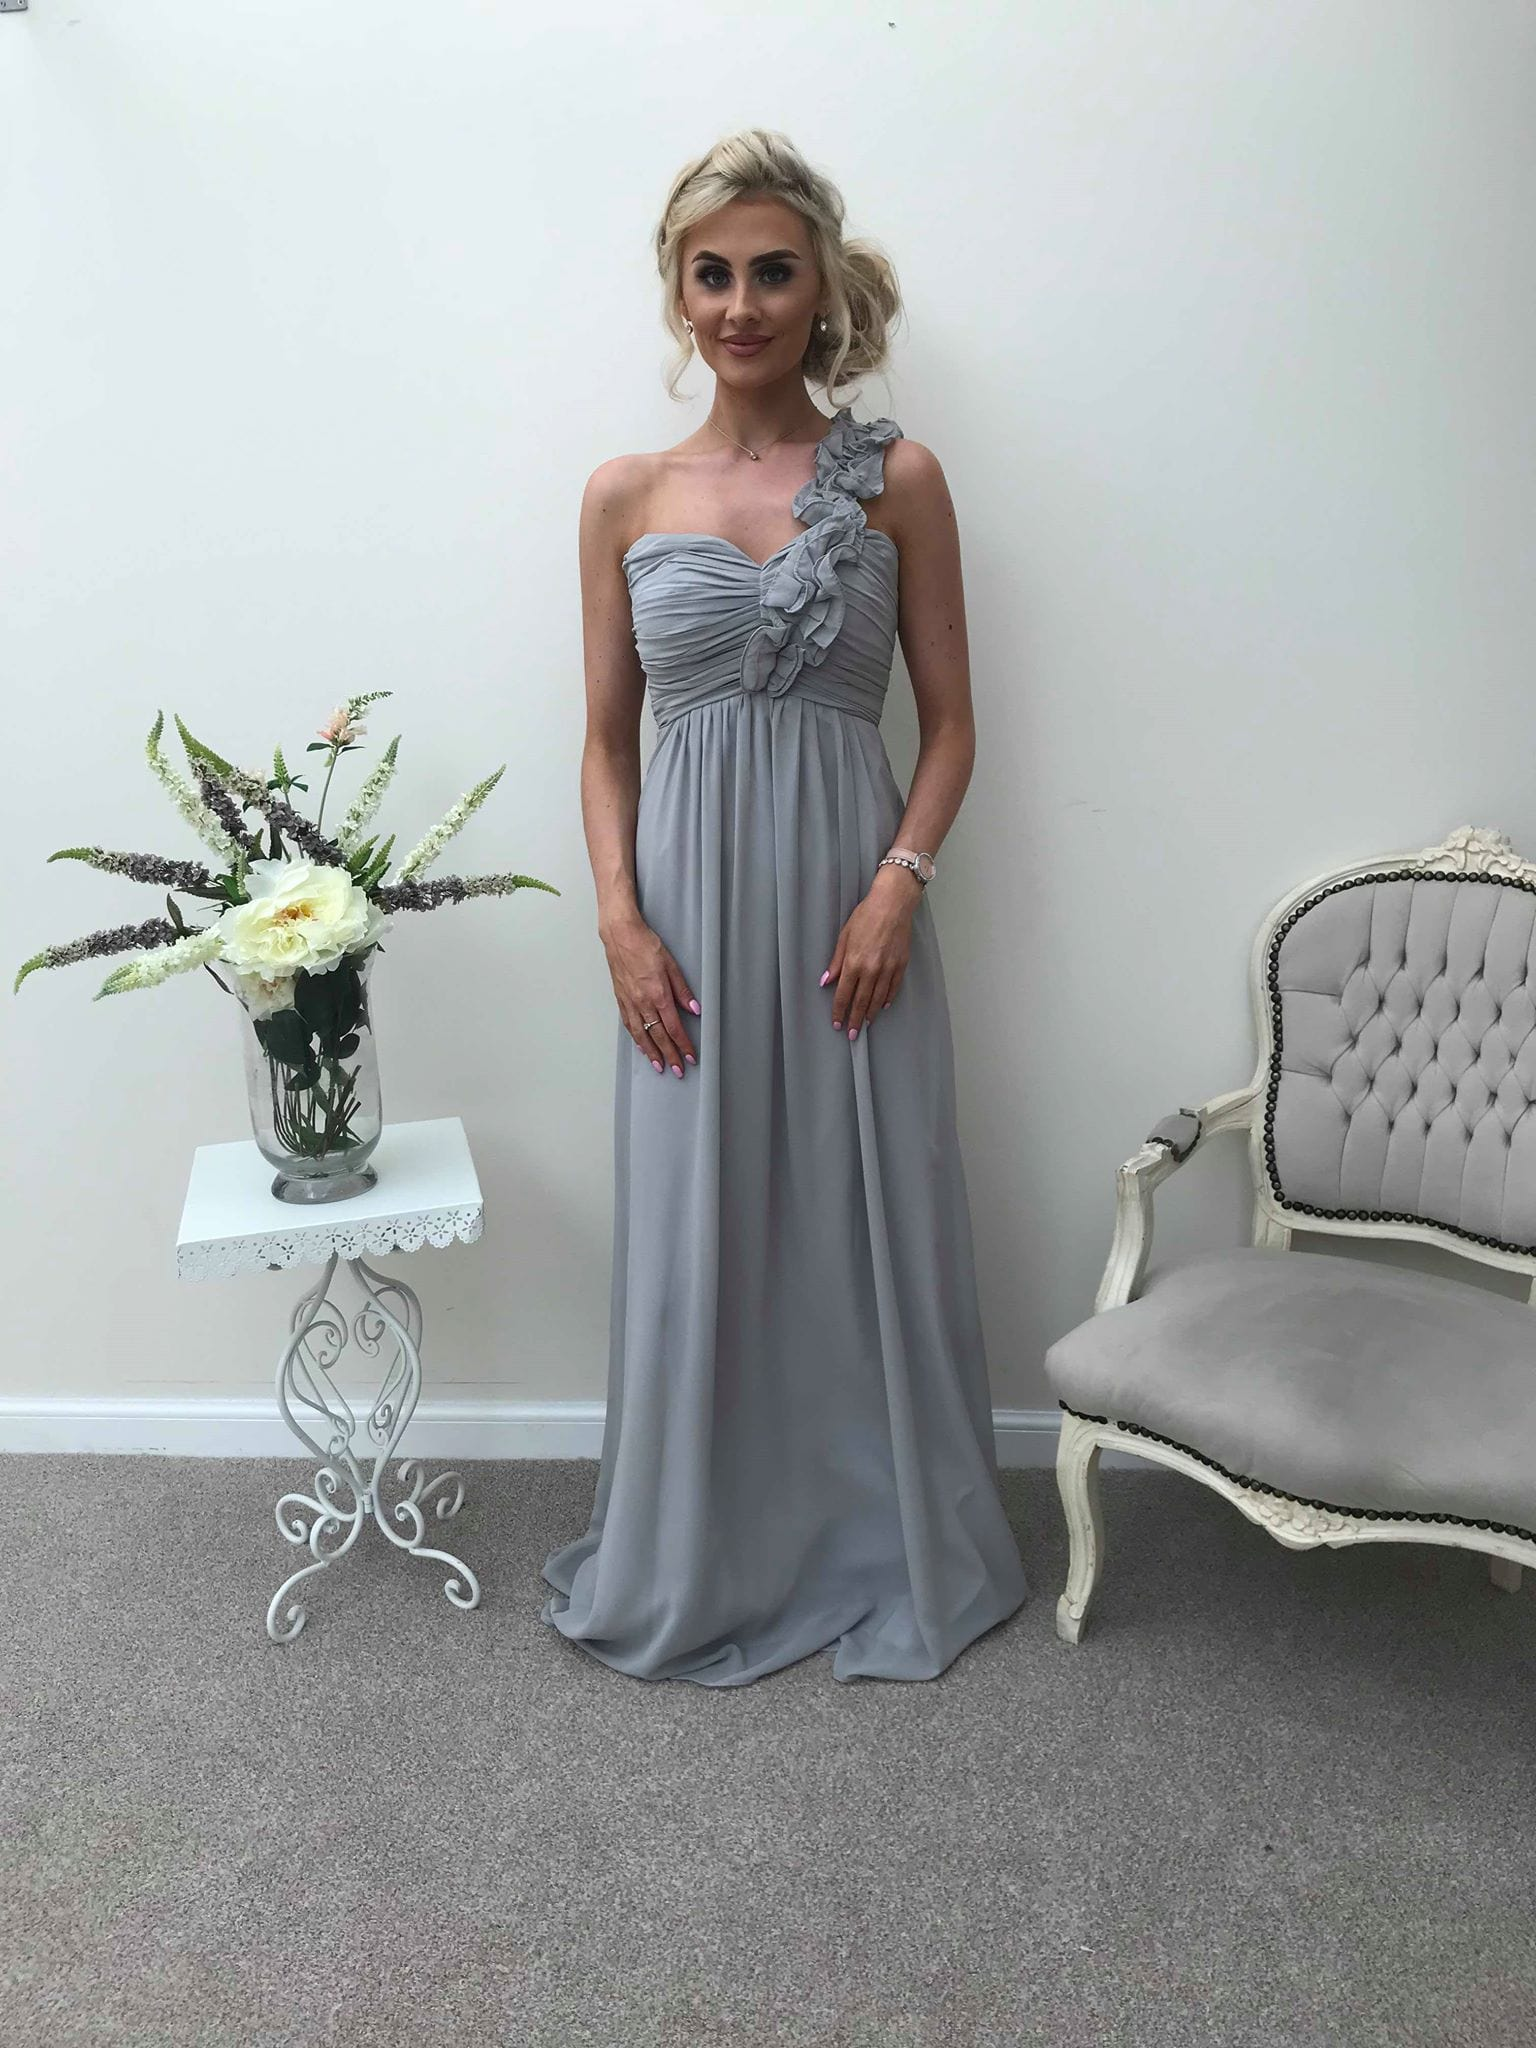 Eve | One Shoulder Bridesmaid Dress - That Special Day Bridal Warehouse